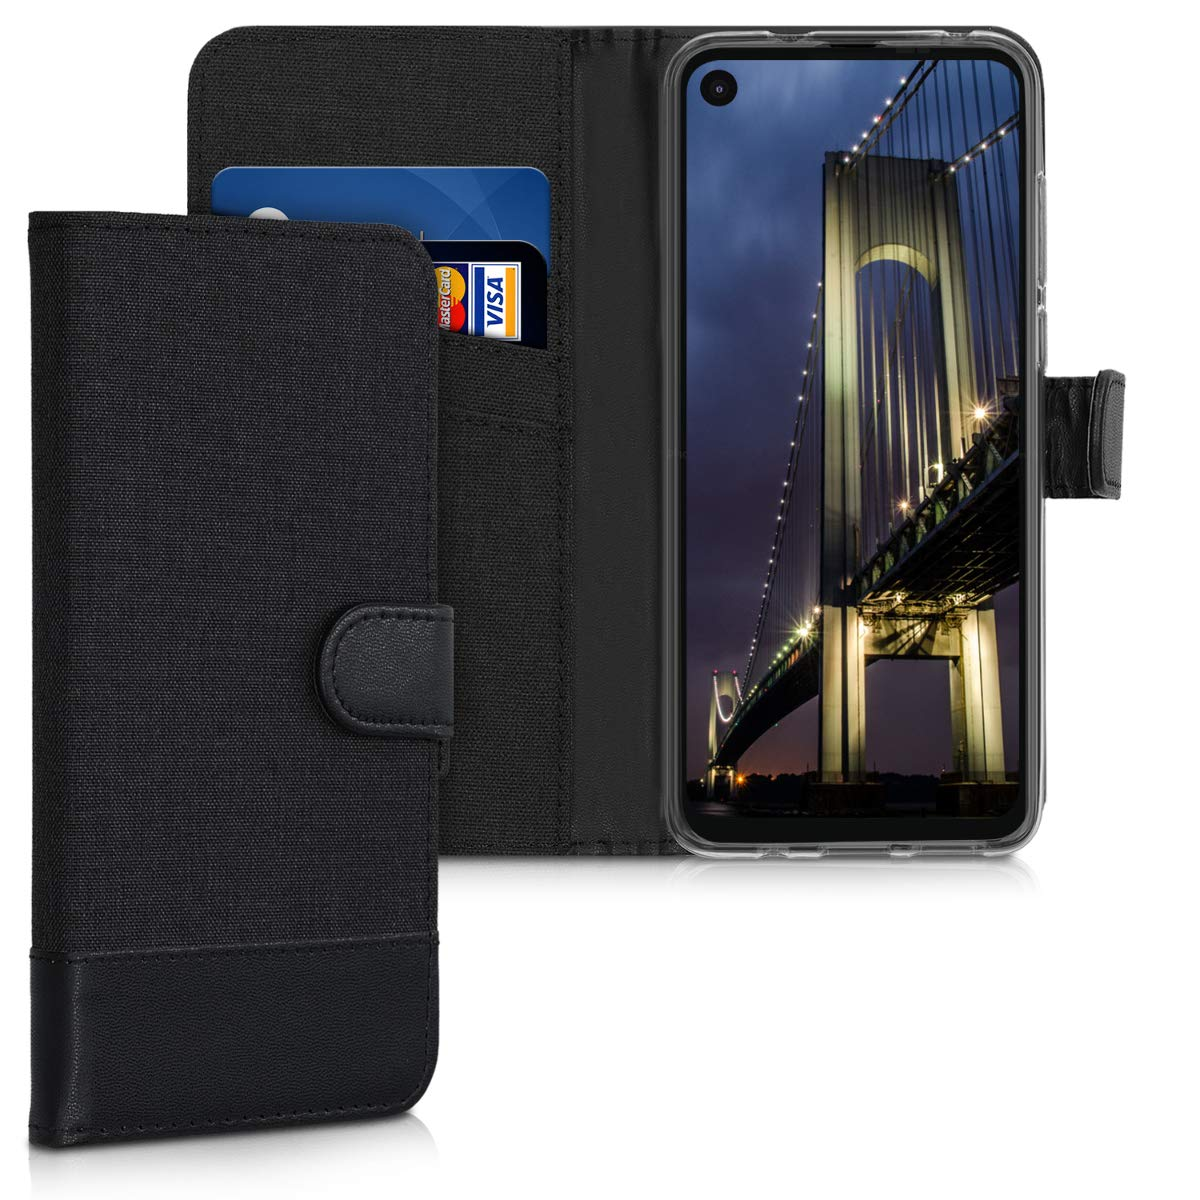 funda estilo billetera para motorola one action